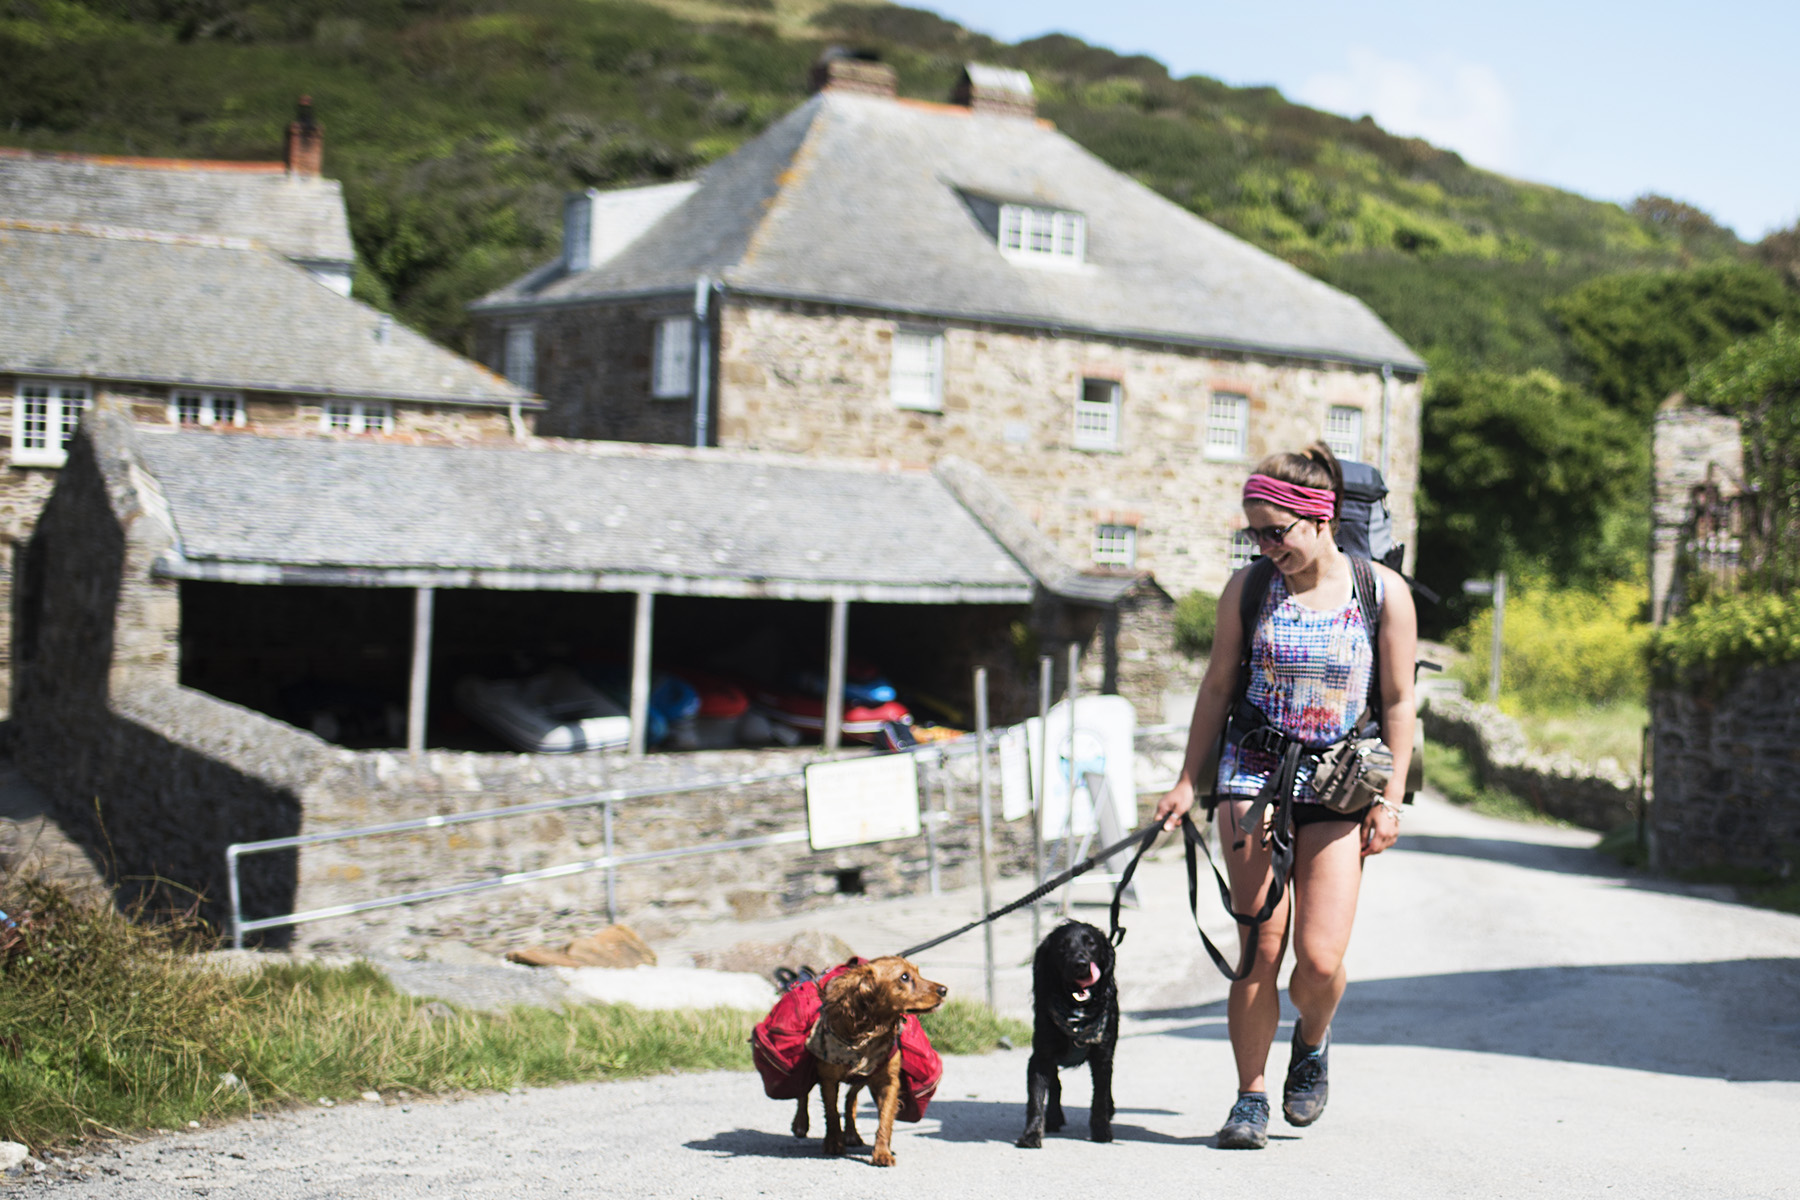 Welcome to Paws & Tors | Paws & Tors